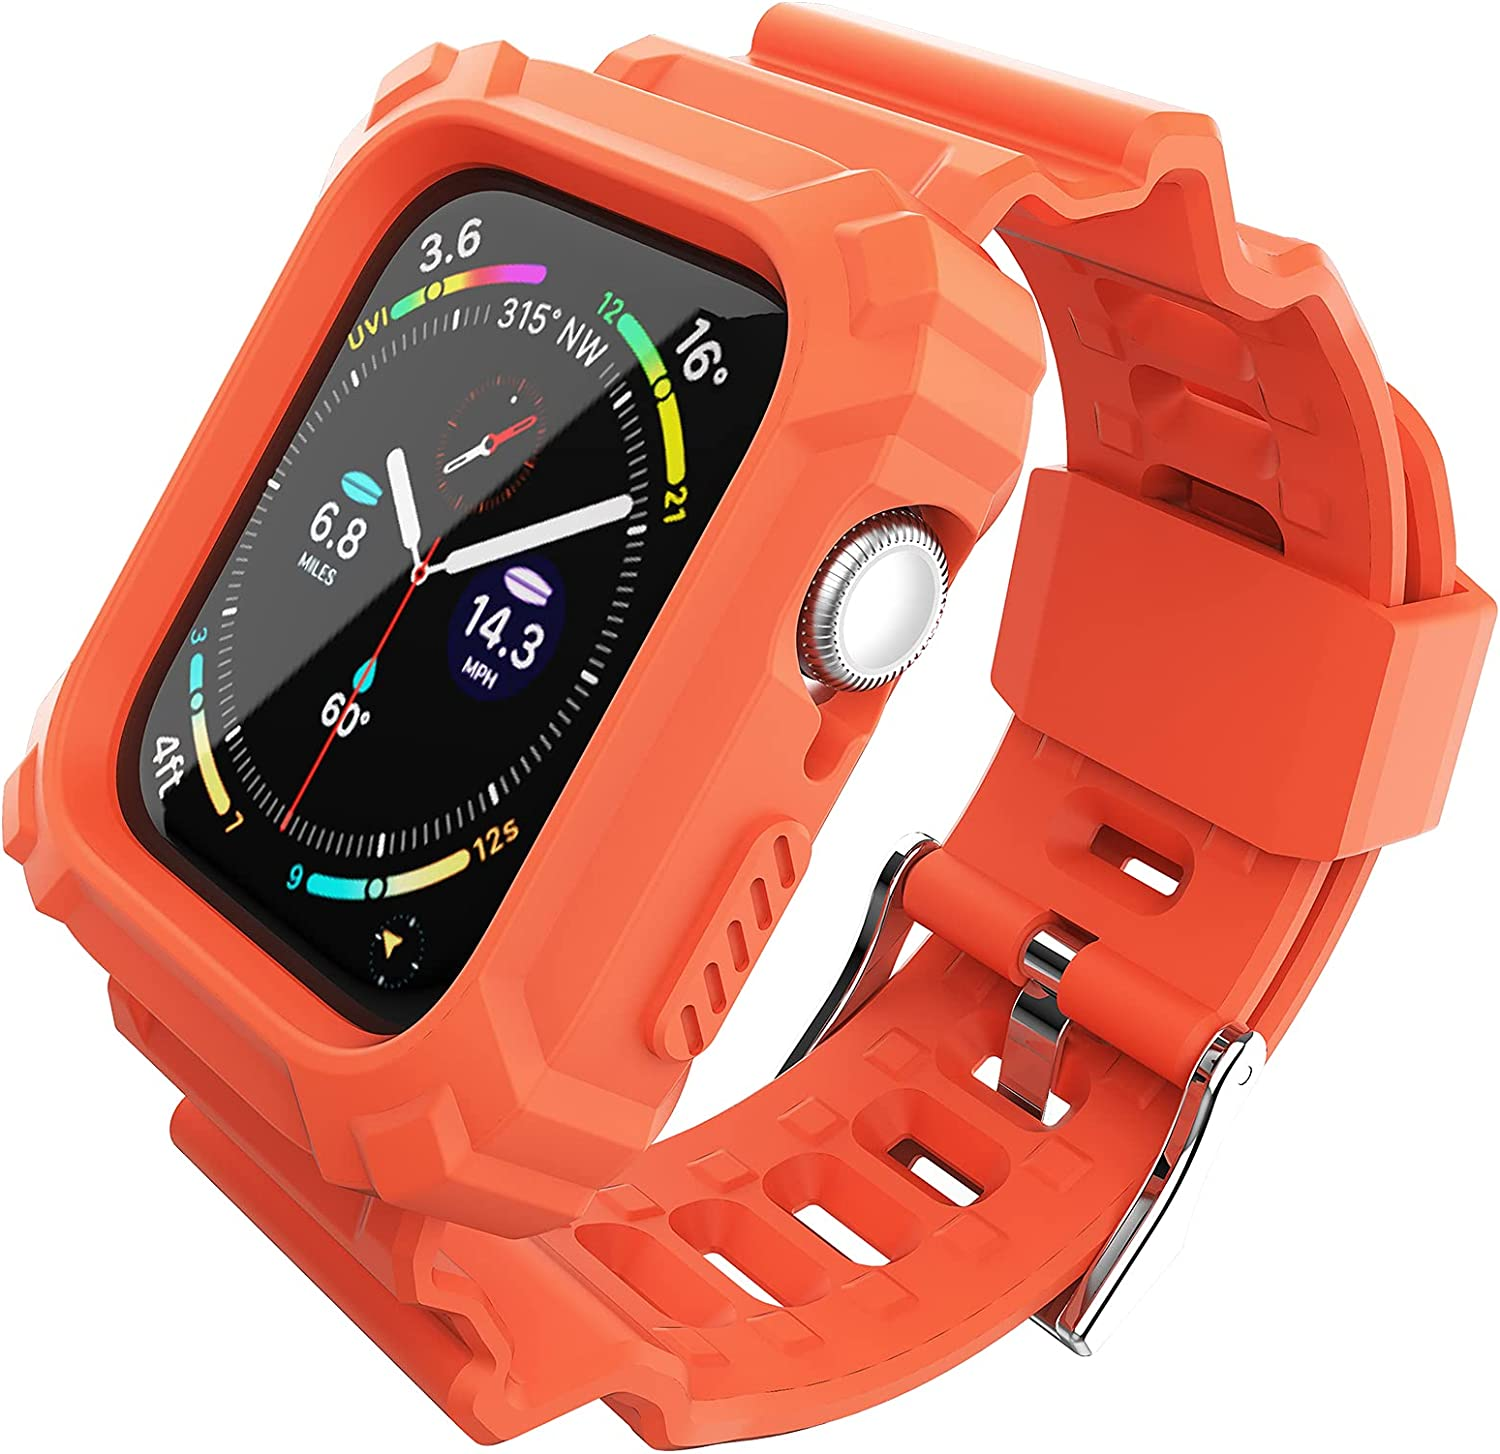 FITO Compatible with Apple Watch Bands 38mm 40mm Series with Case, Rugged Shock Resistant Case with TPU Sport Strap Bands Applicable to iWatch Series 6/5/4/3/2/1/SE - Orange